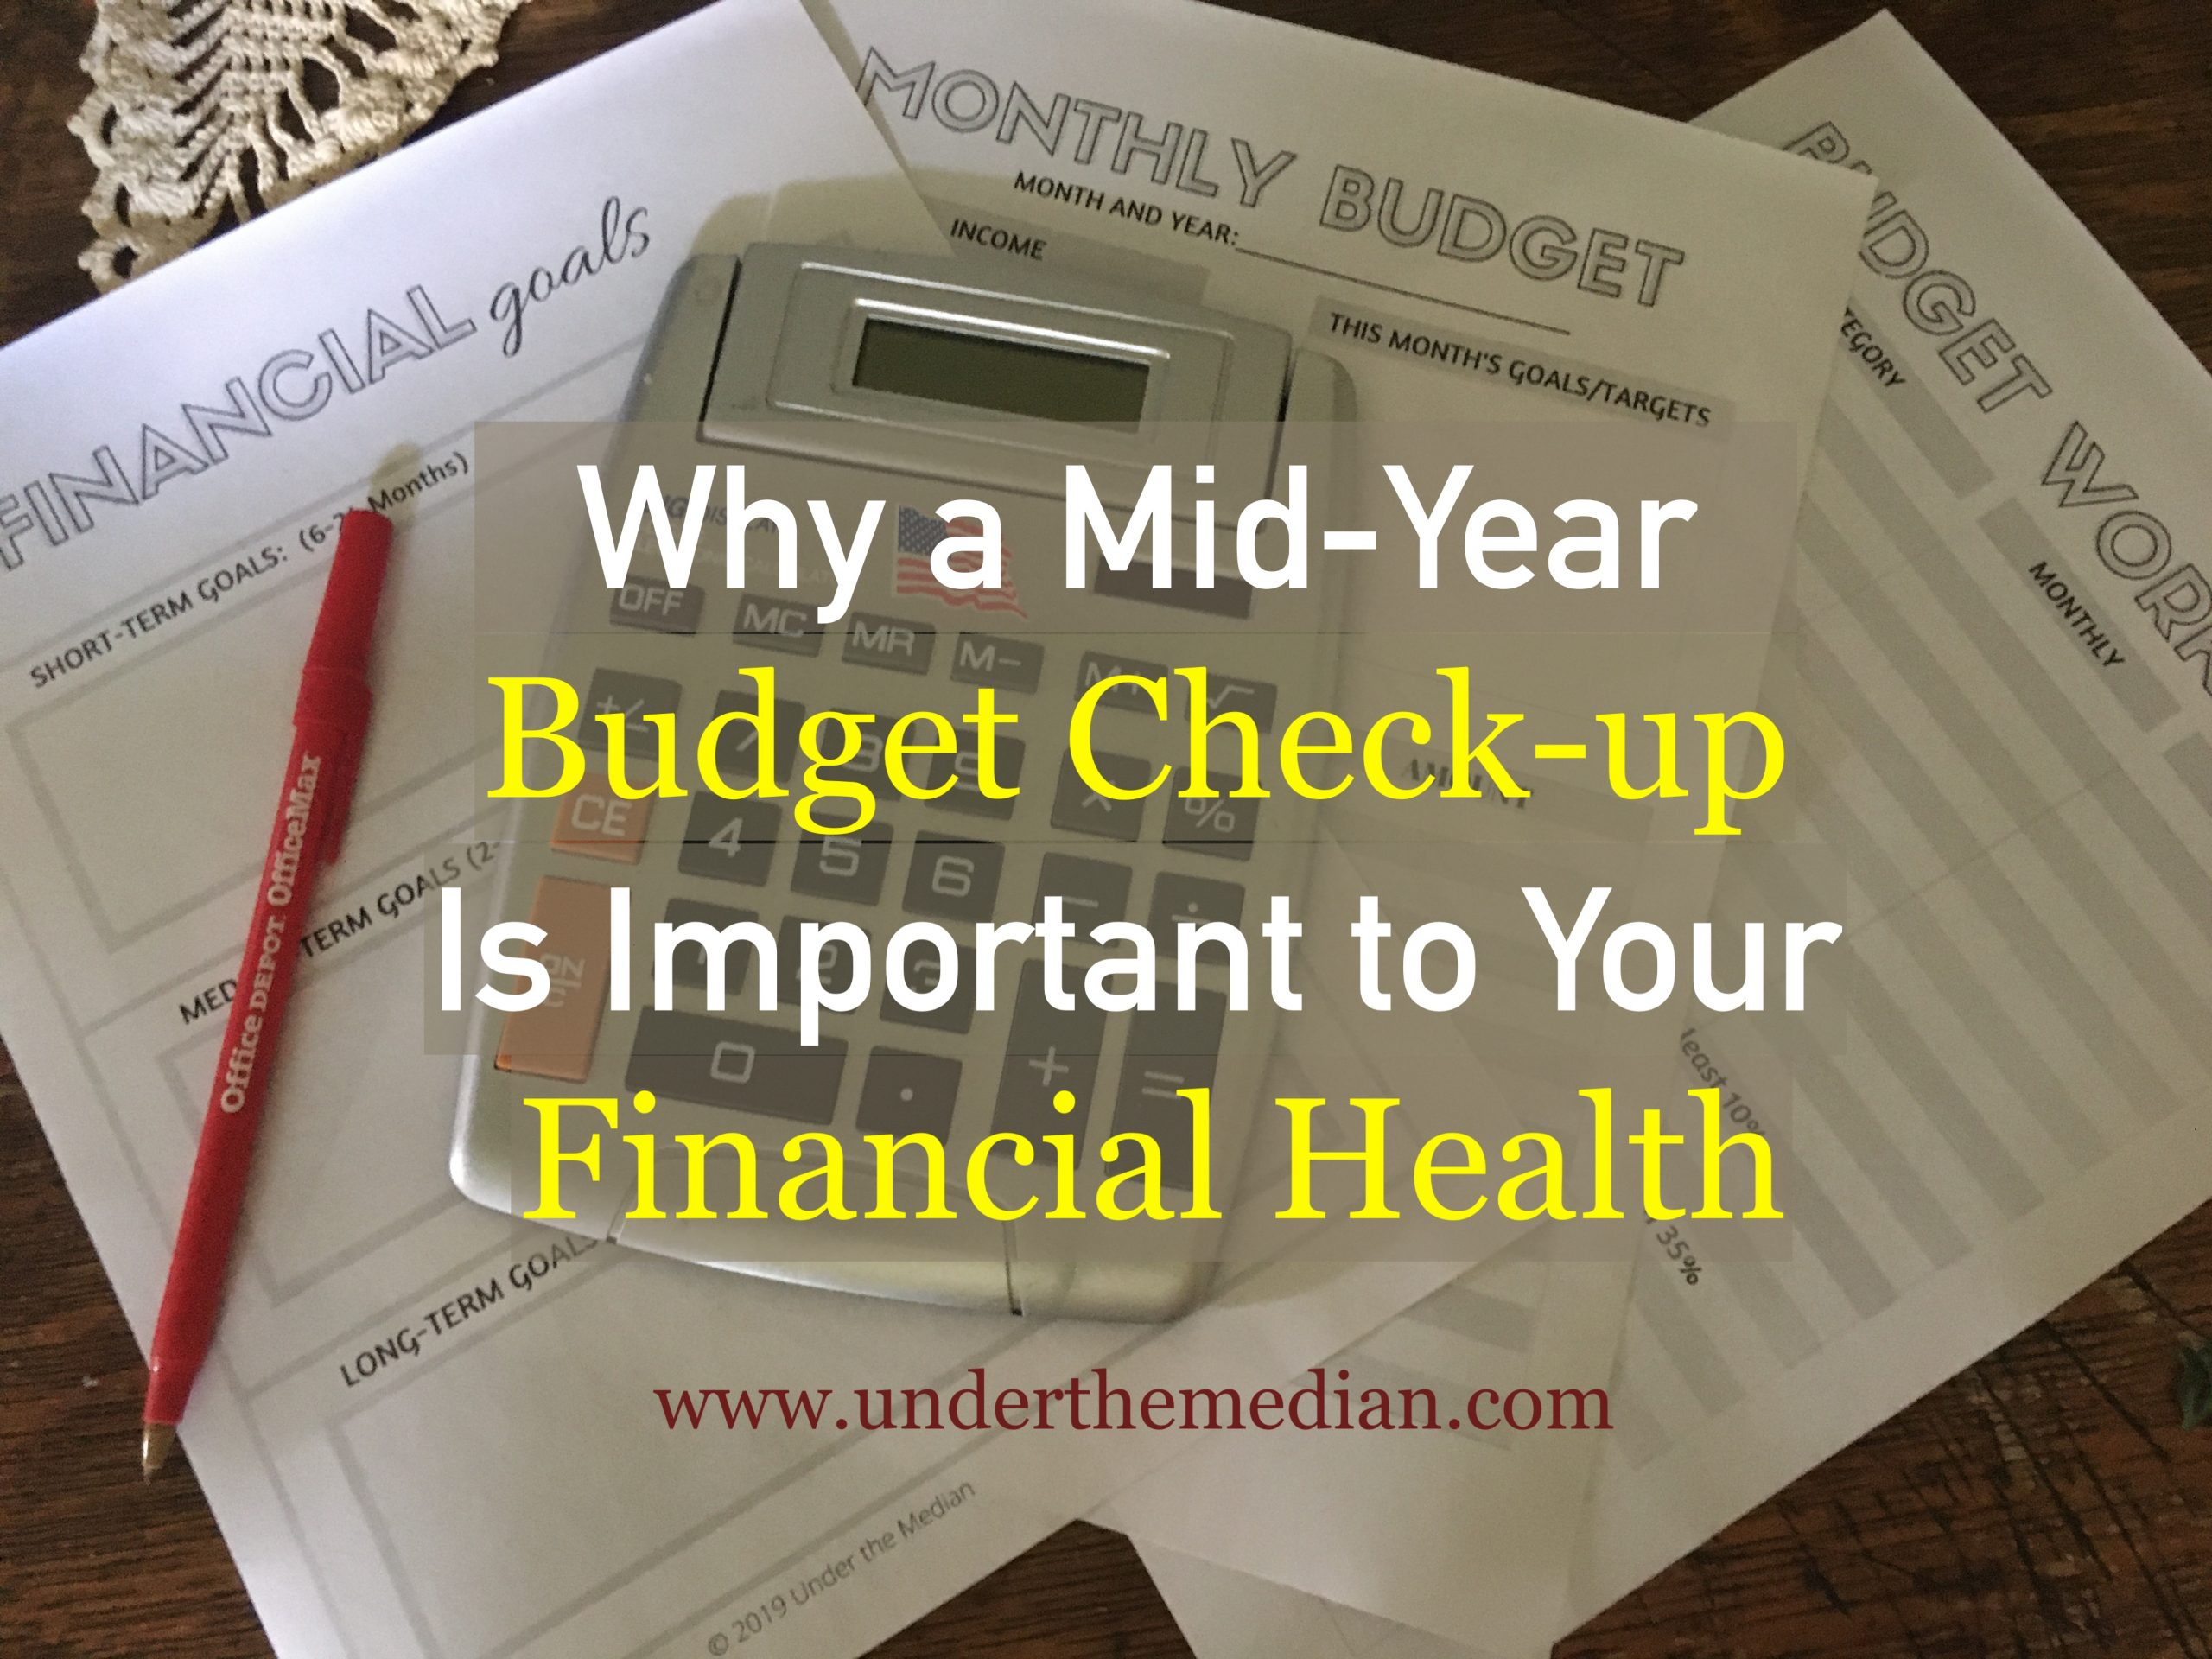 Why a Mid-year Budget Check-up Is Important